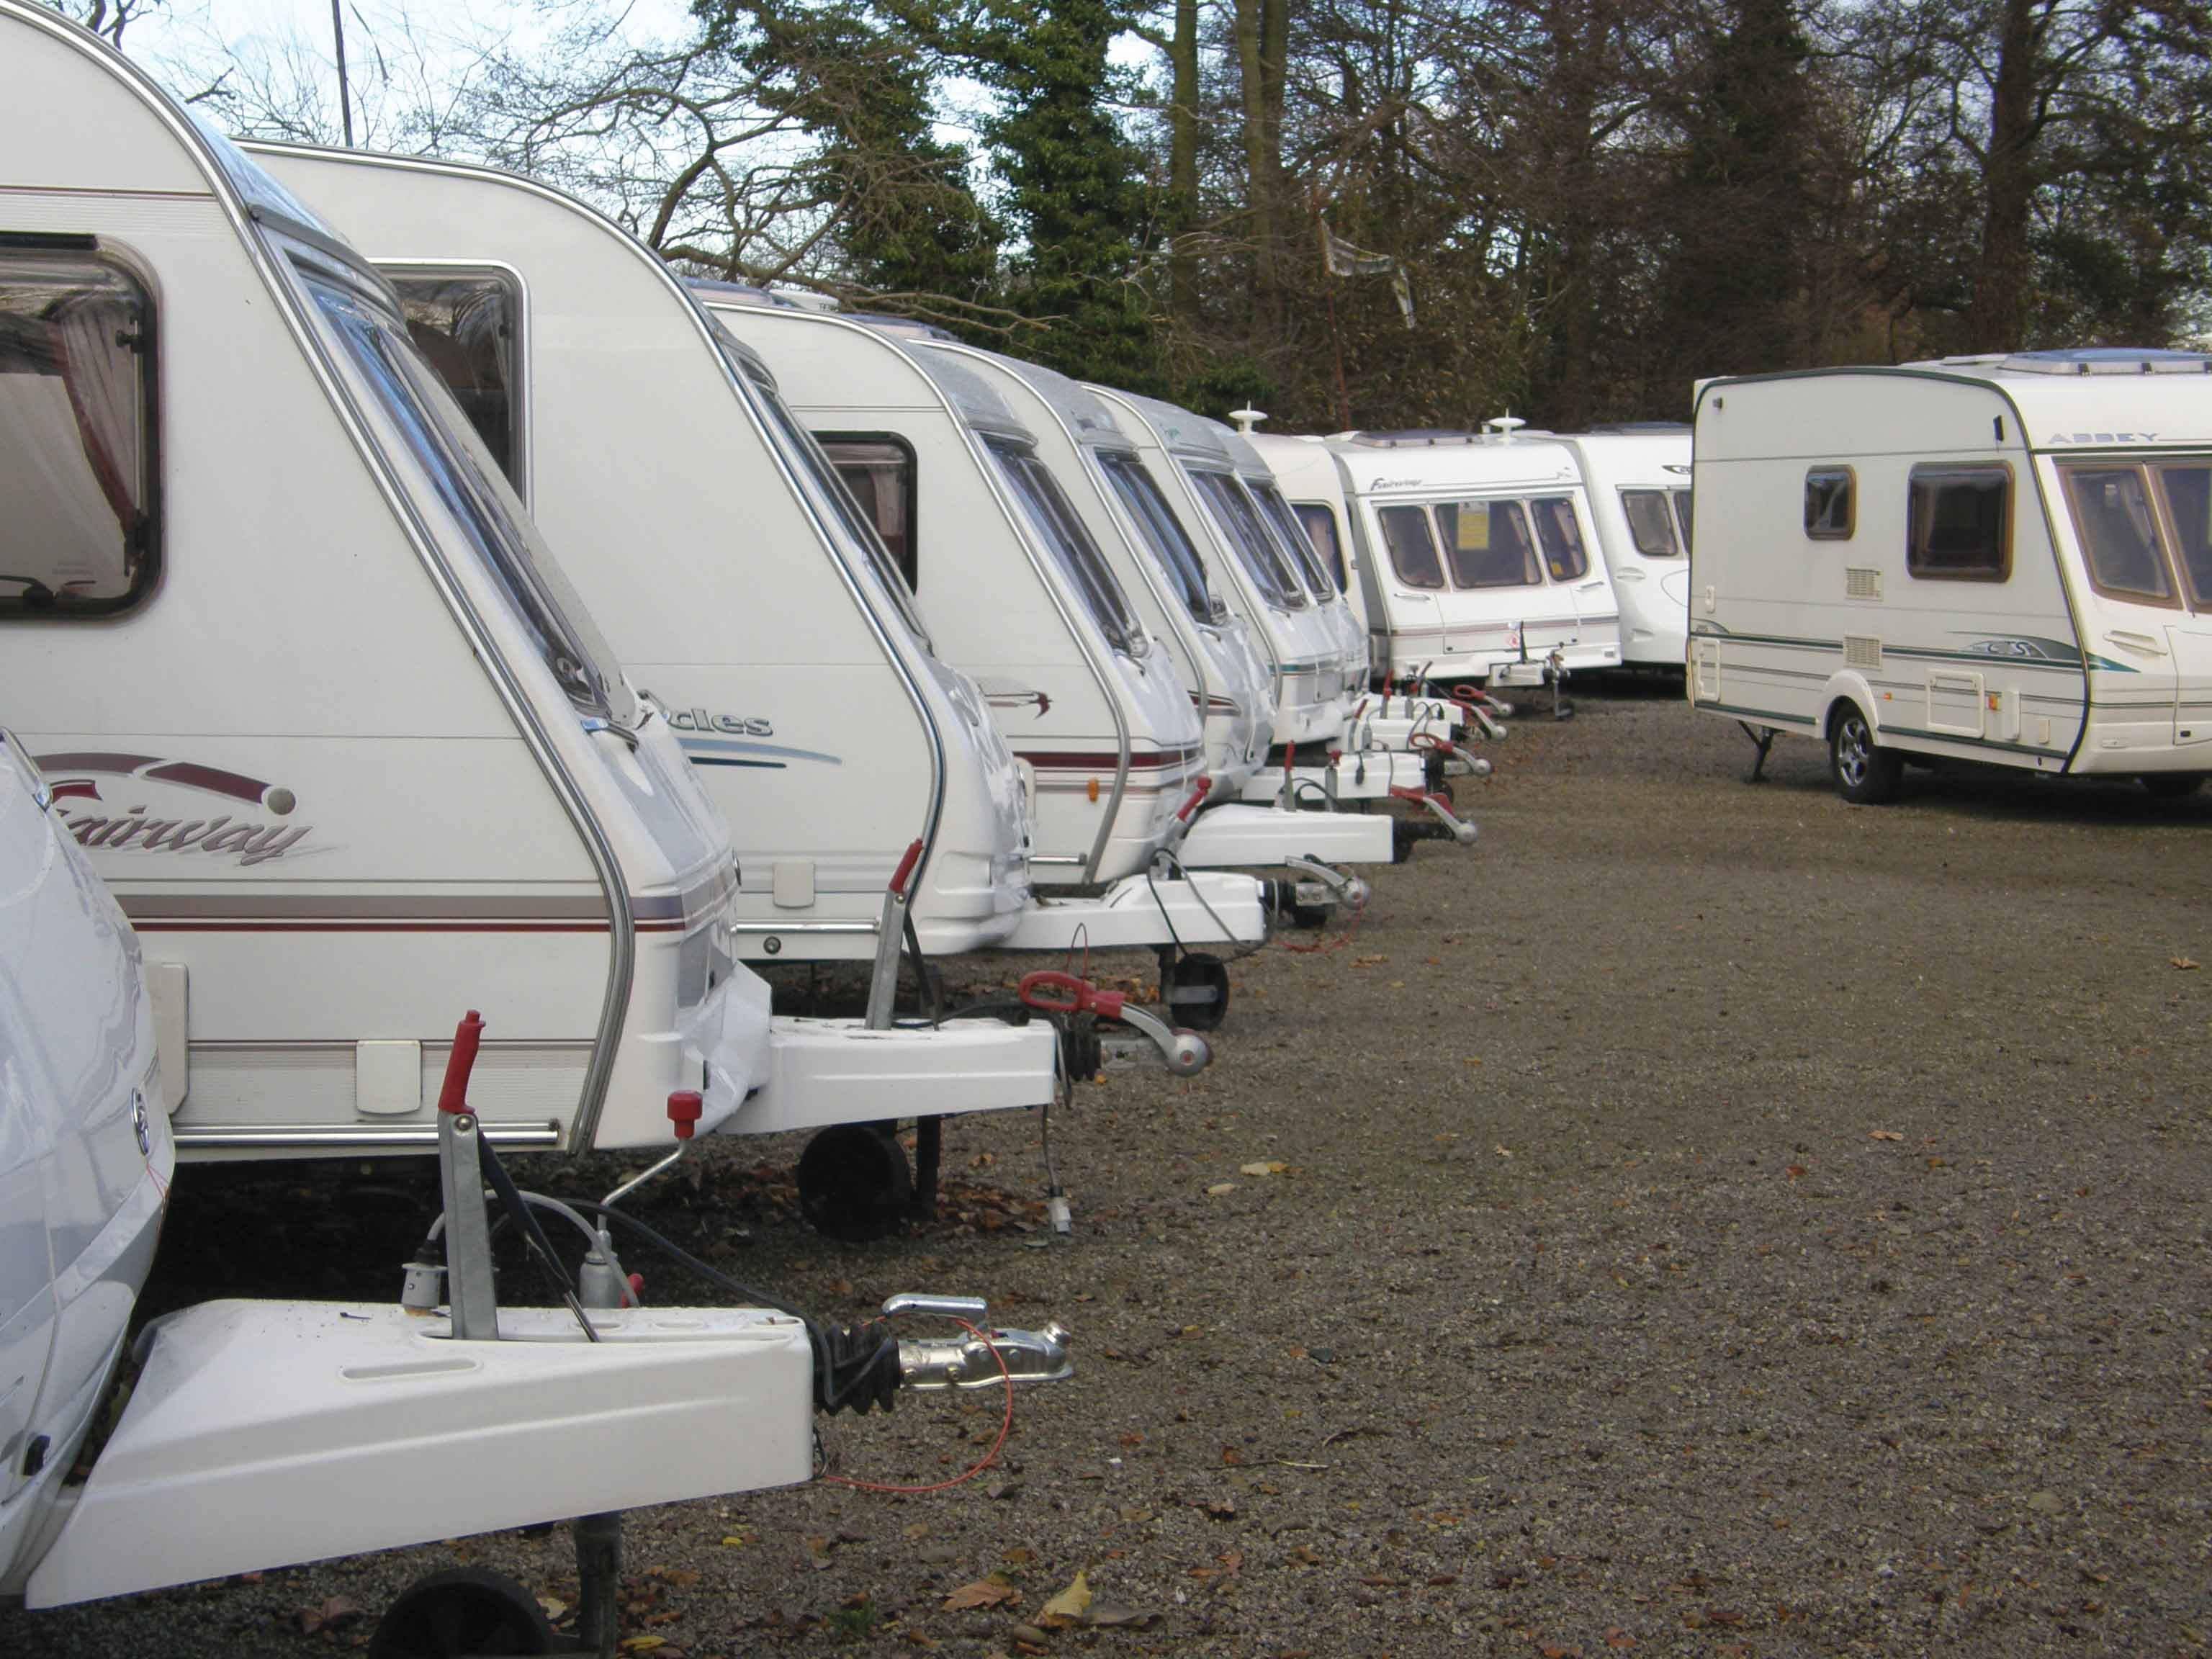 52cfb4267d92e3 6 Choosing a used caravan - The Camping and Caravanning Club